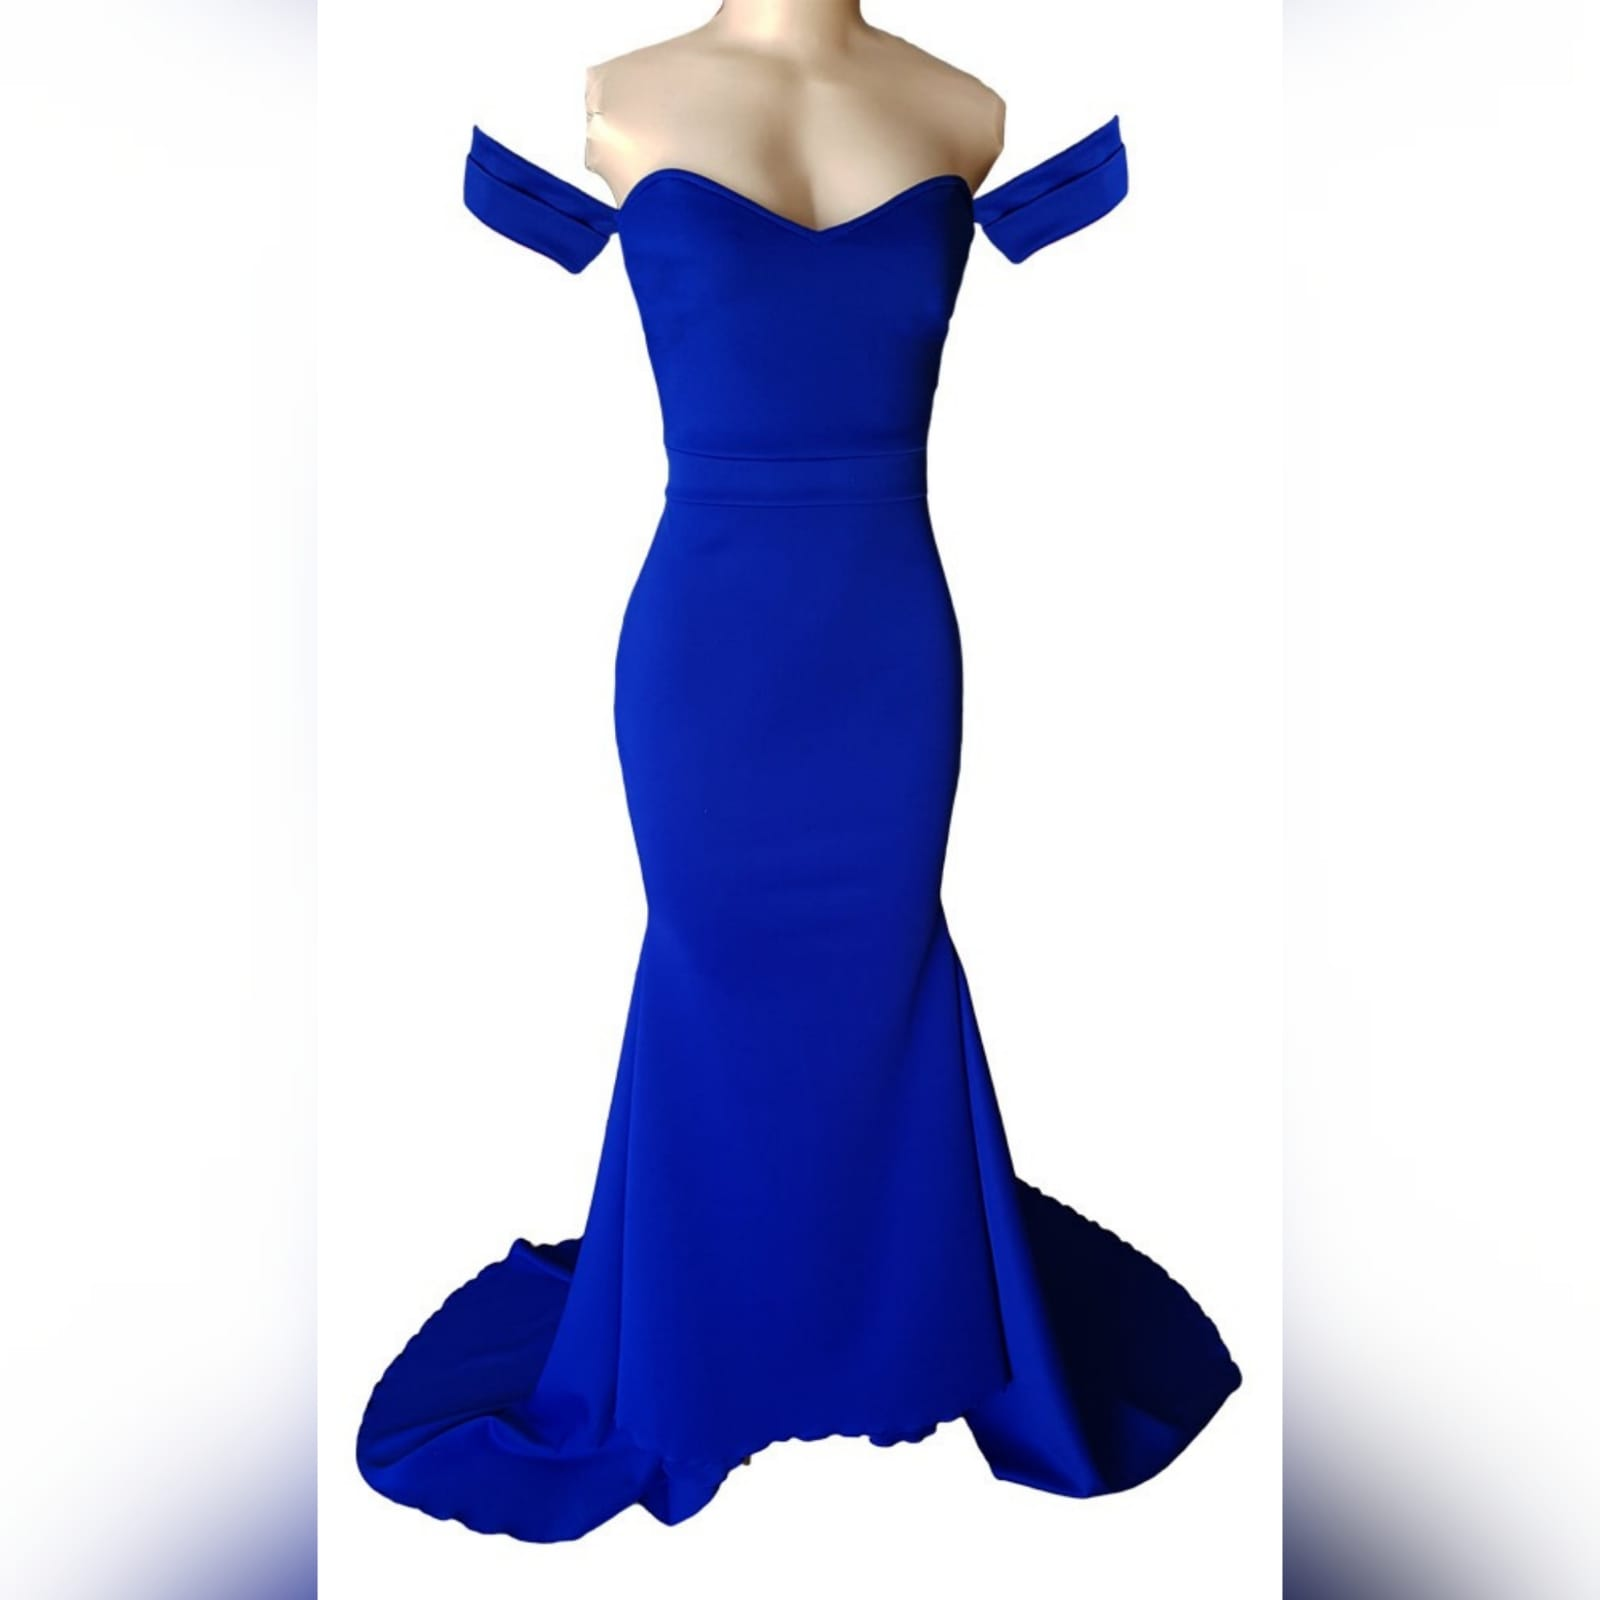 Simple royal blue soft mermaid dress 4 a simple royal blue soft mermaid dress, created for a debutantes ball. With a modern off-shoulder neckline and off-shoulder short sleeves. A belt effect to enhance the waist and a train for a touch of drama.